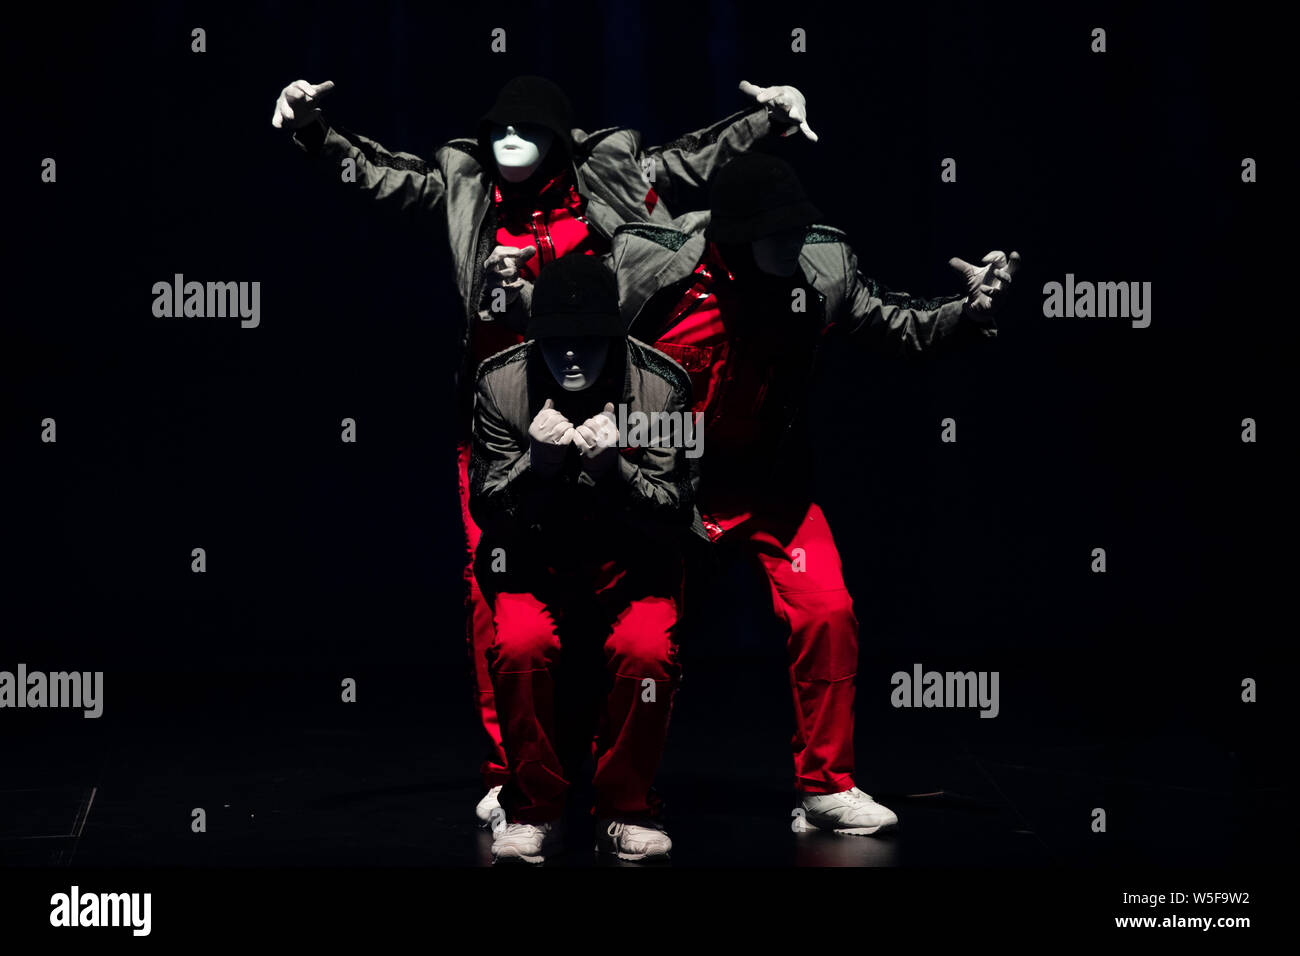 American Hip Hop Stock Photos & American Hip Hop Stock